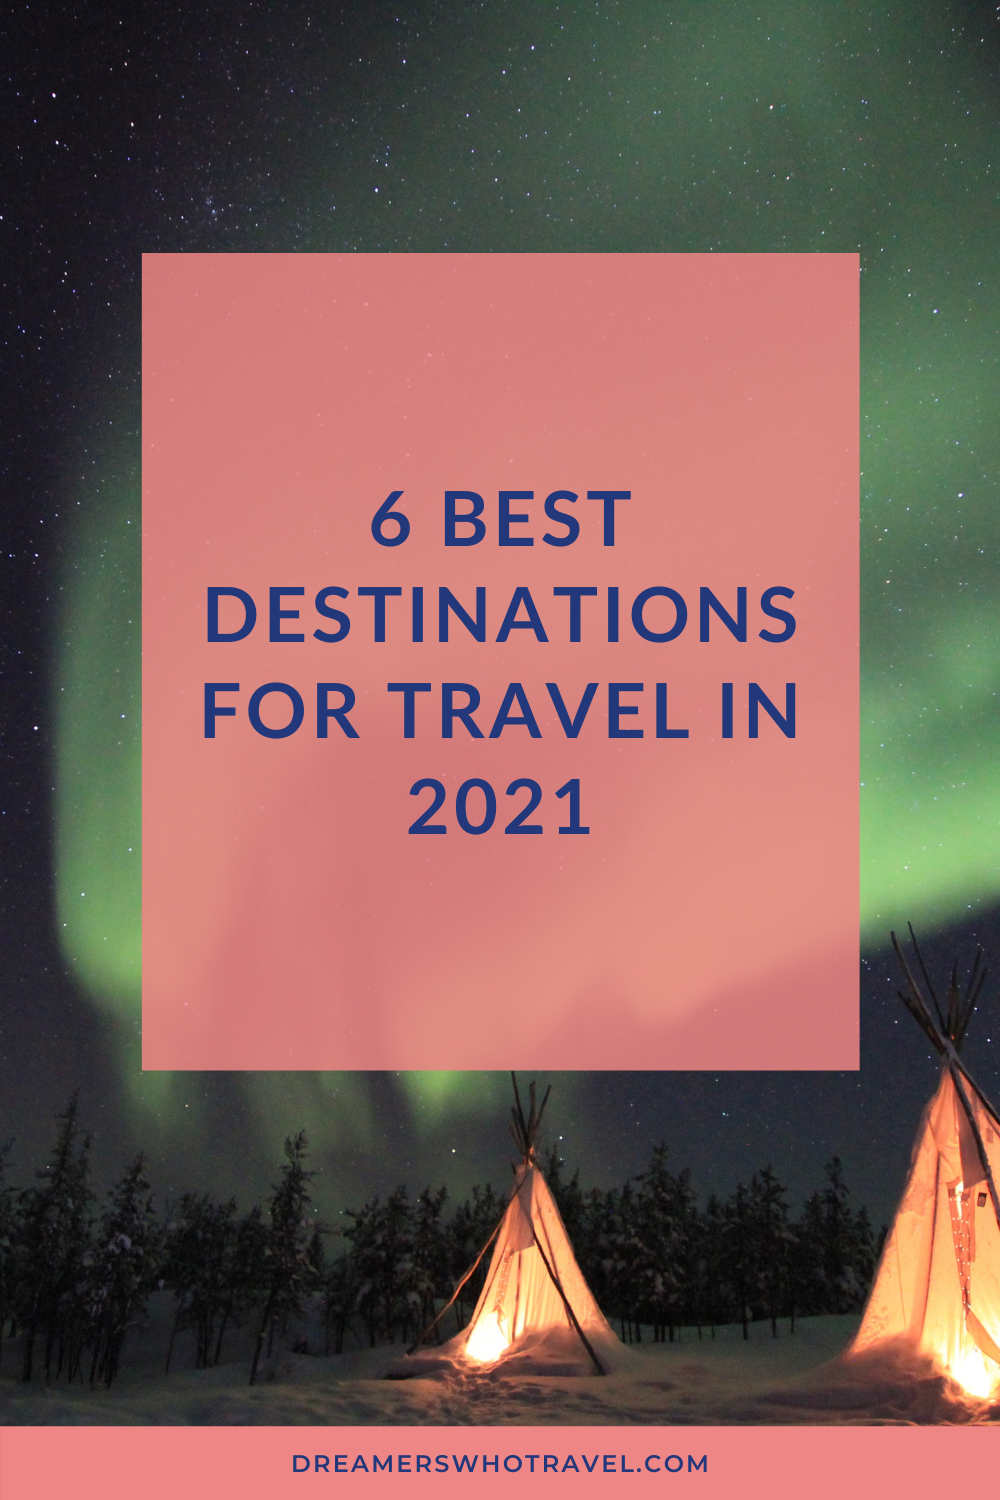 6 BEST DESTINATIONS FOR TRAVEL IN 2021